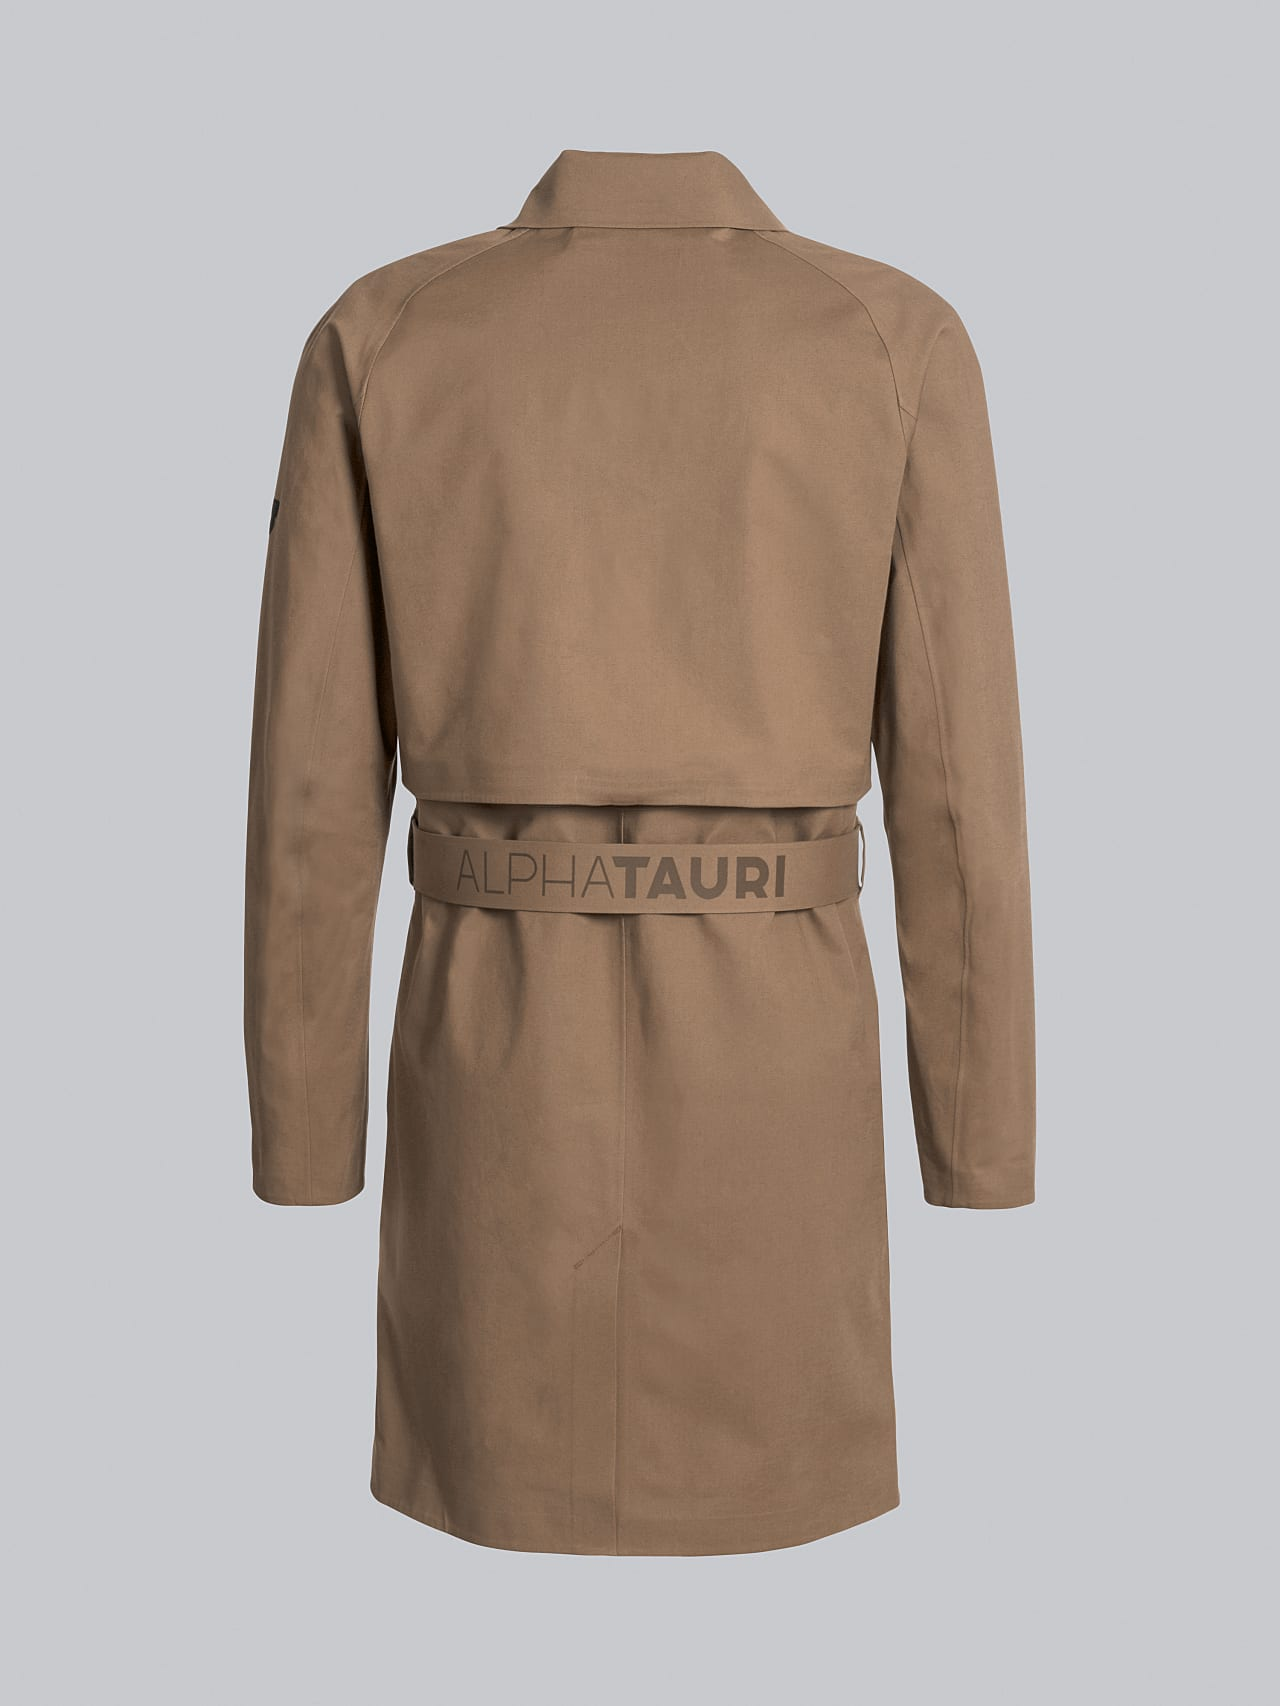 OMANA V1.Y5.02 Packable and Waterproof Trench Coat gold Left Alpha Tauri